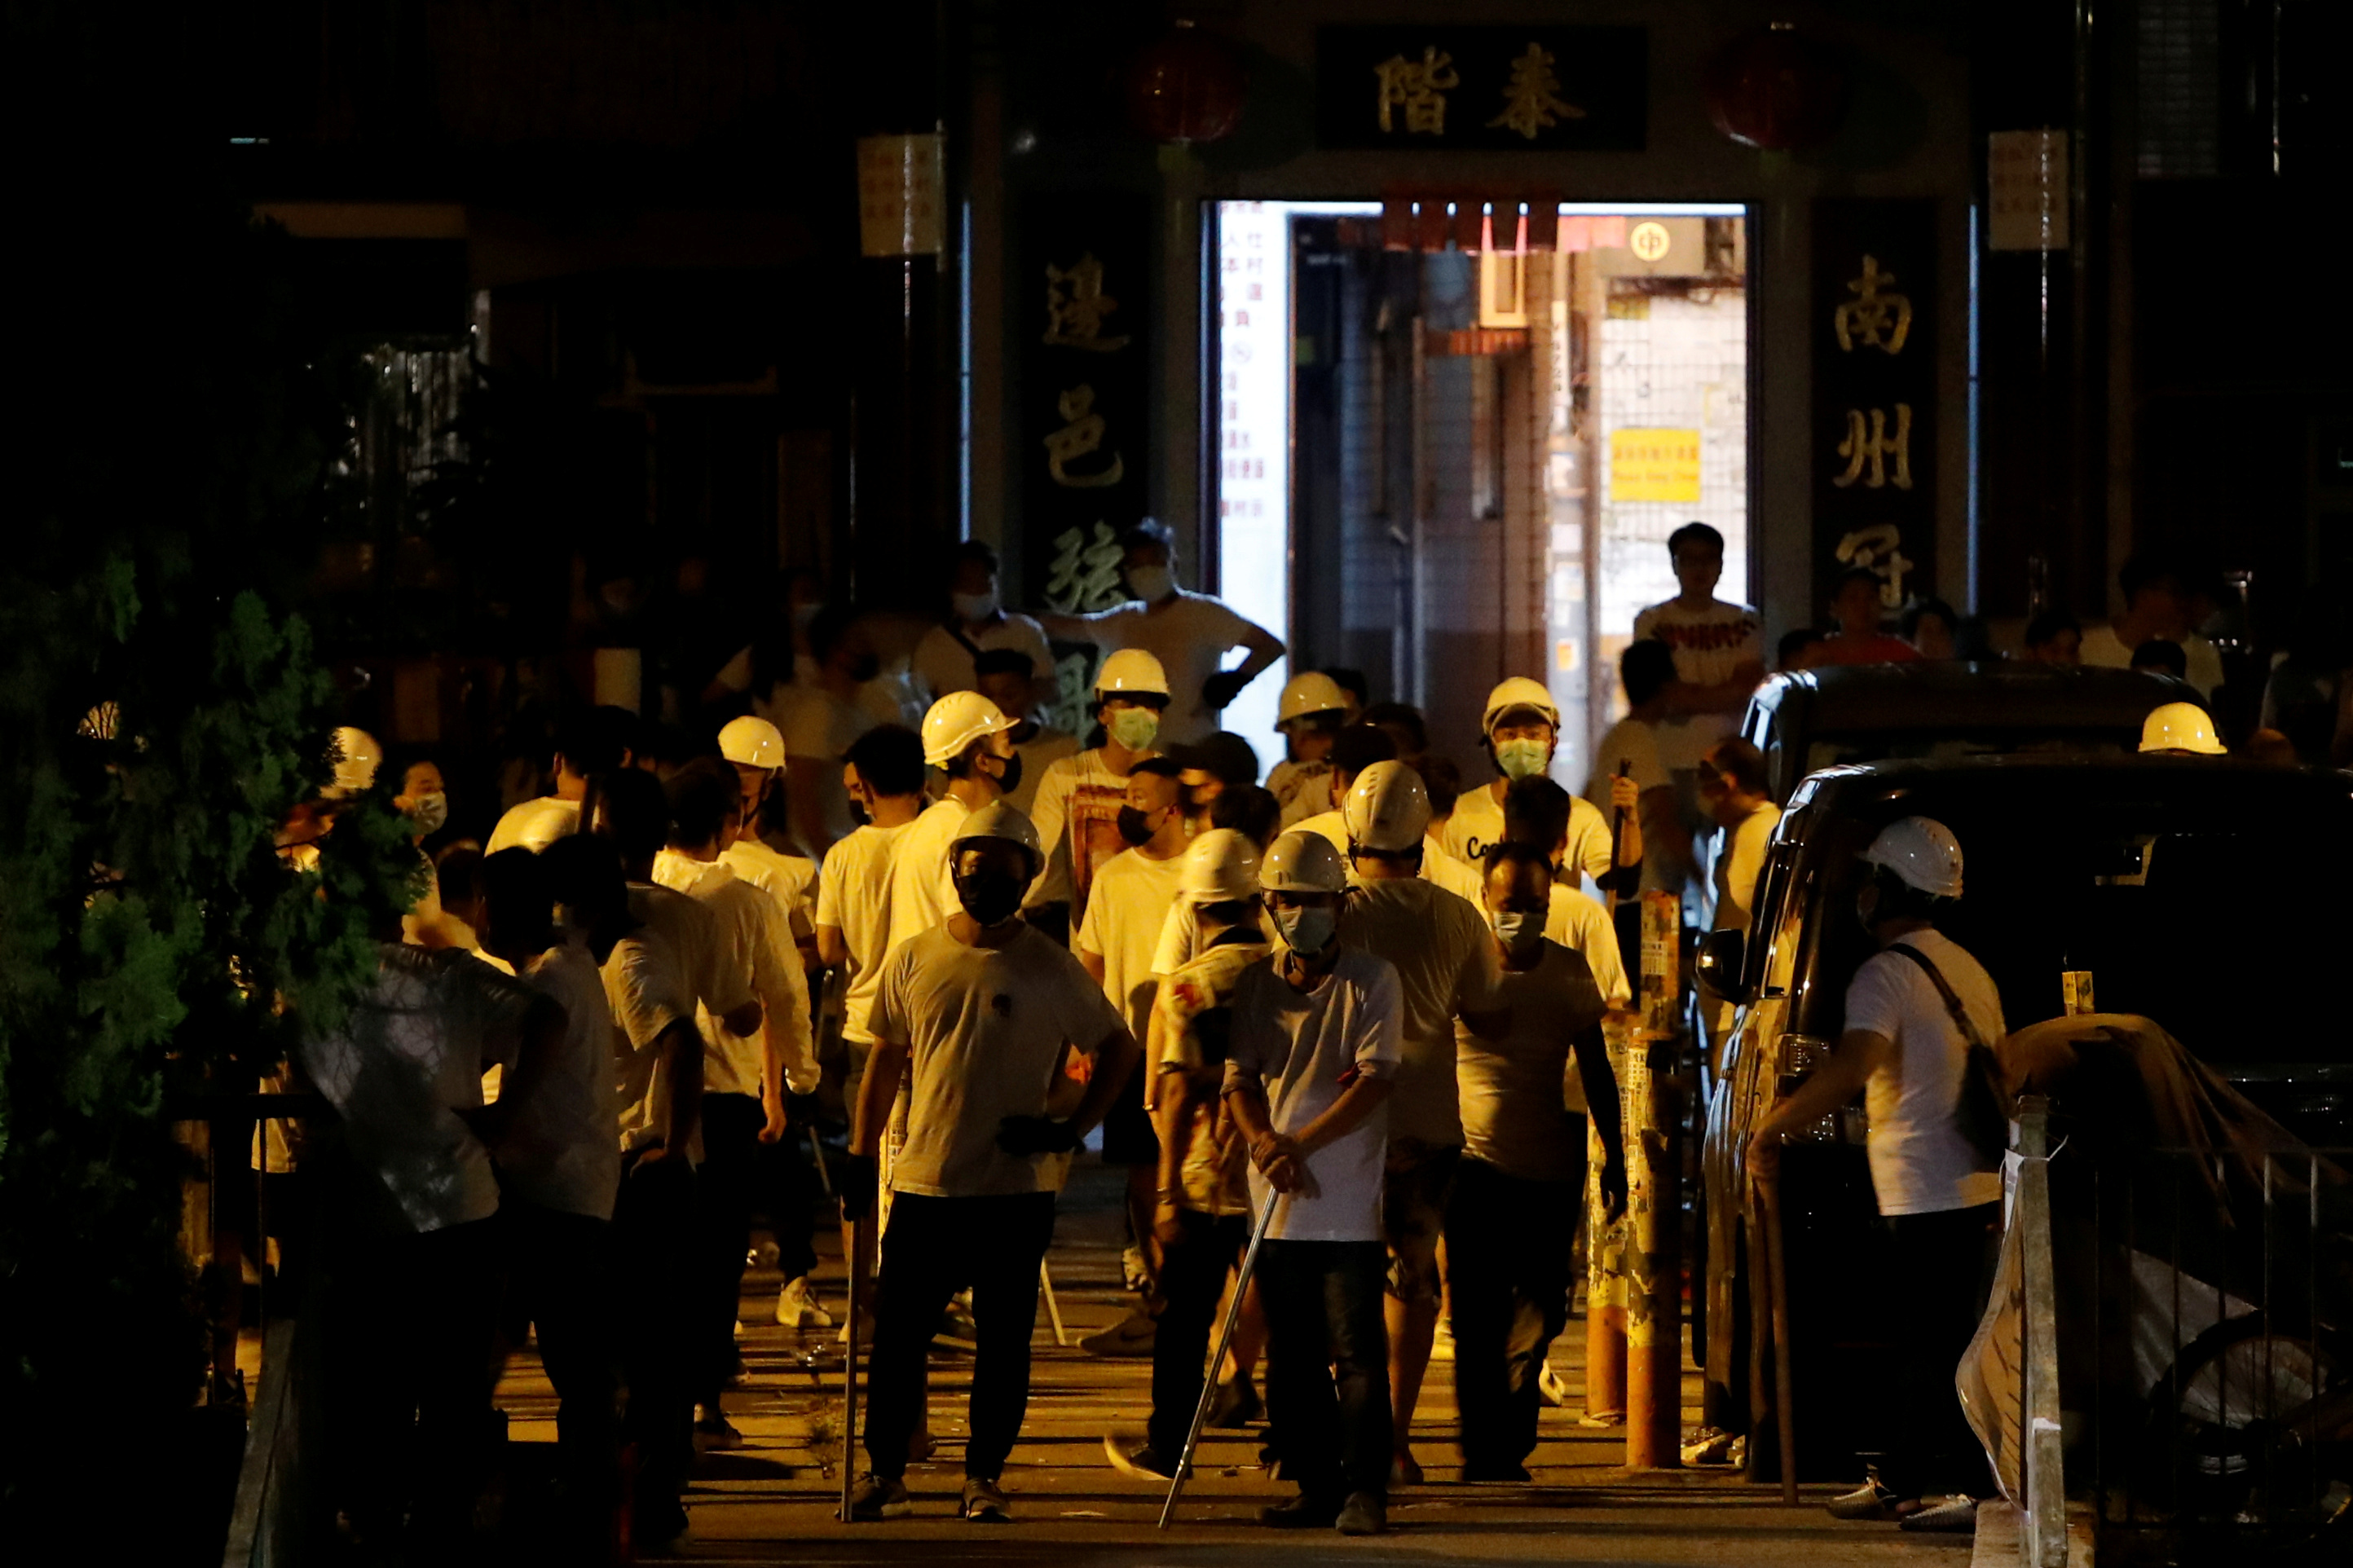 Following the violence unleashed by white-clad thugs in Yuen Long last Sunday, the New Territories town is bracing for further potential trouble. Photo: Reuters